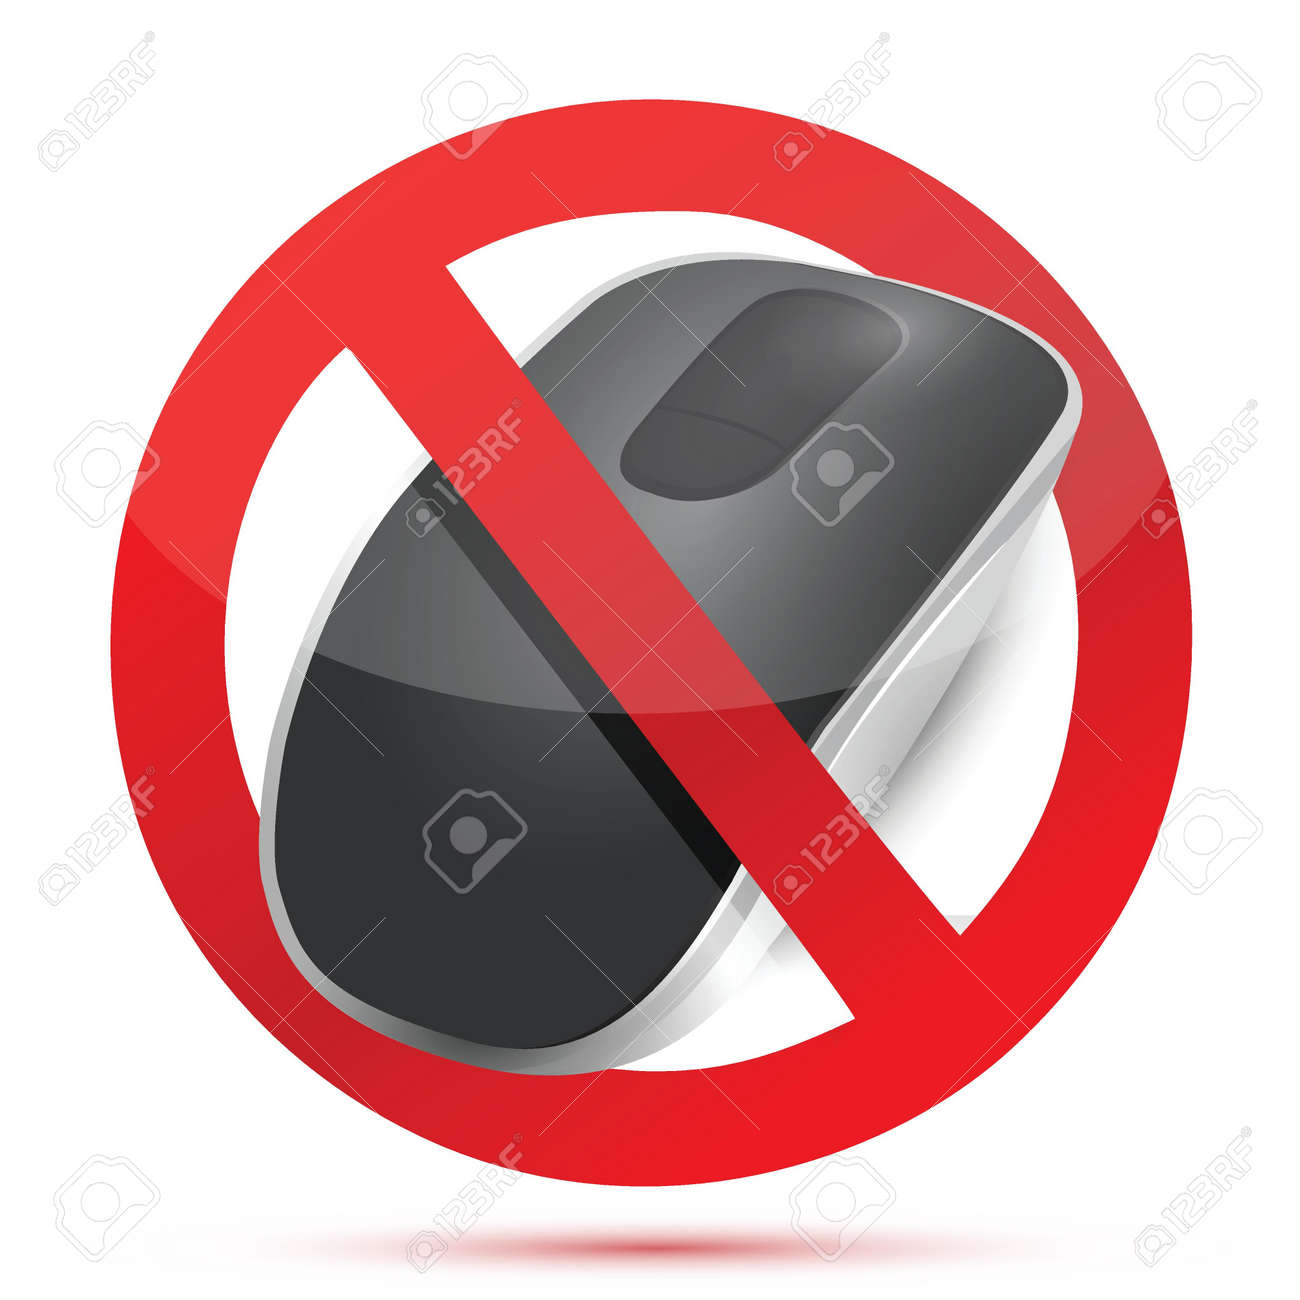 rejected do not sign. Wireless computer mouse isolated on white background Stock Vector - 18965947